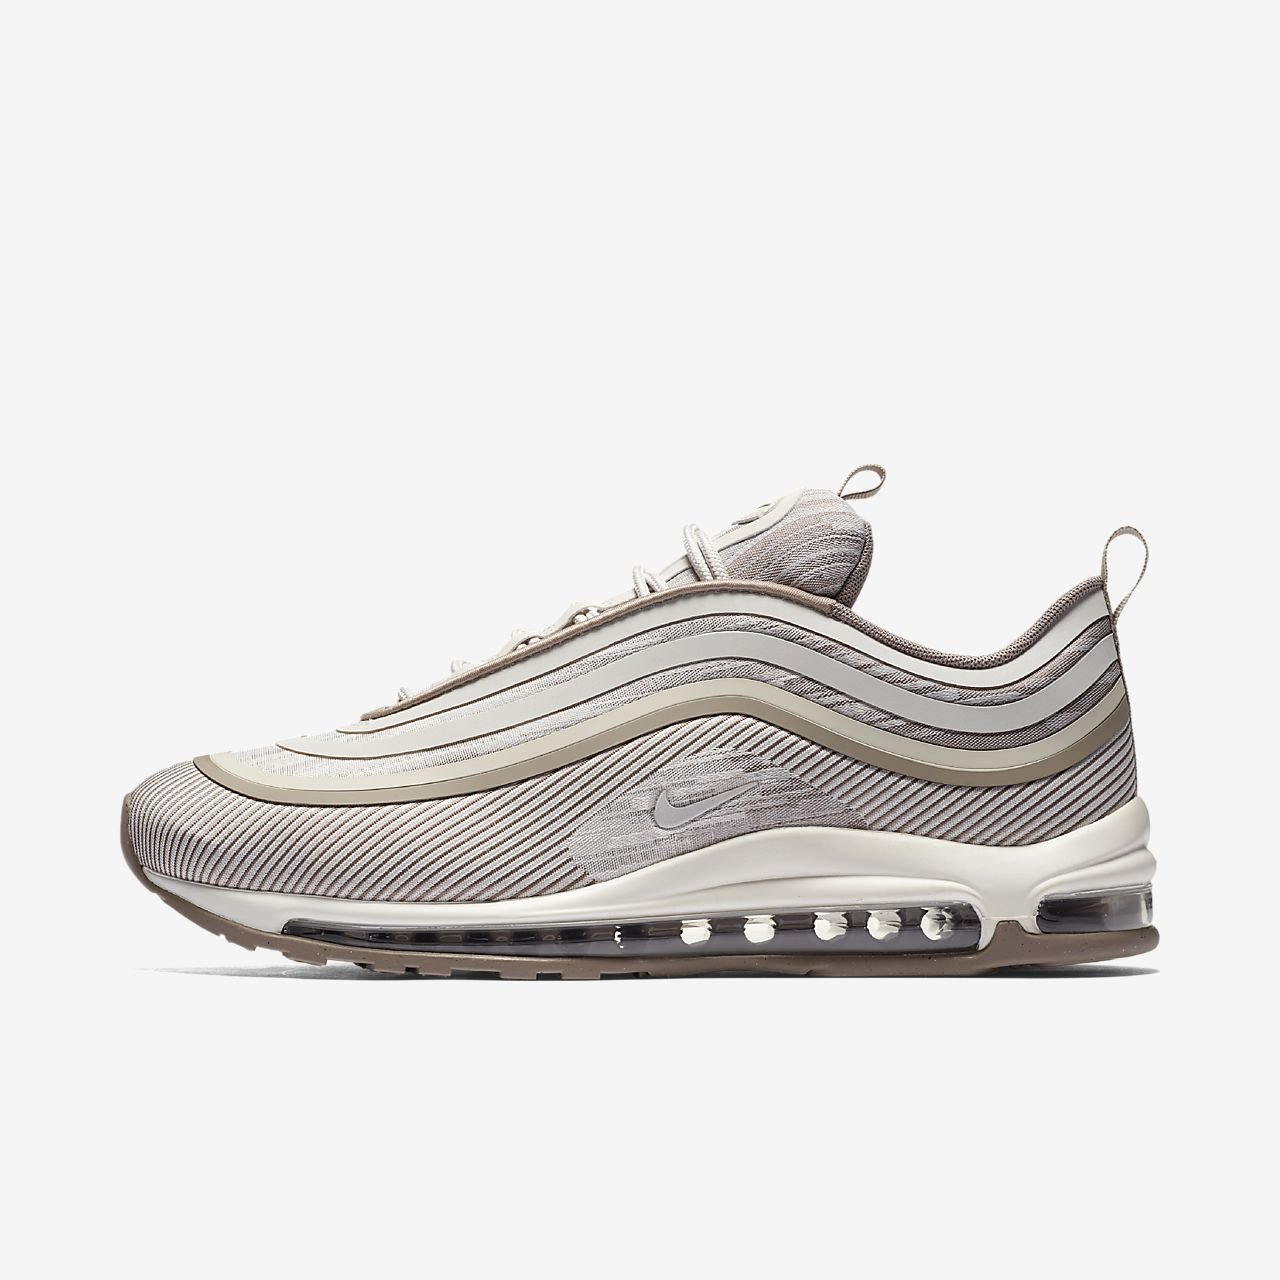 Nike Men's Air Max 97 Ultra '17 Sneaker